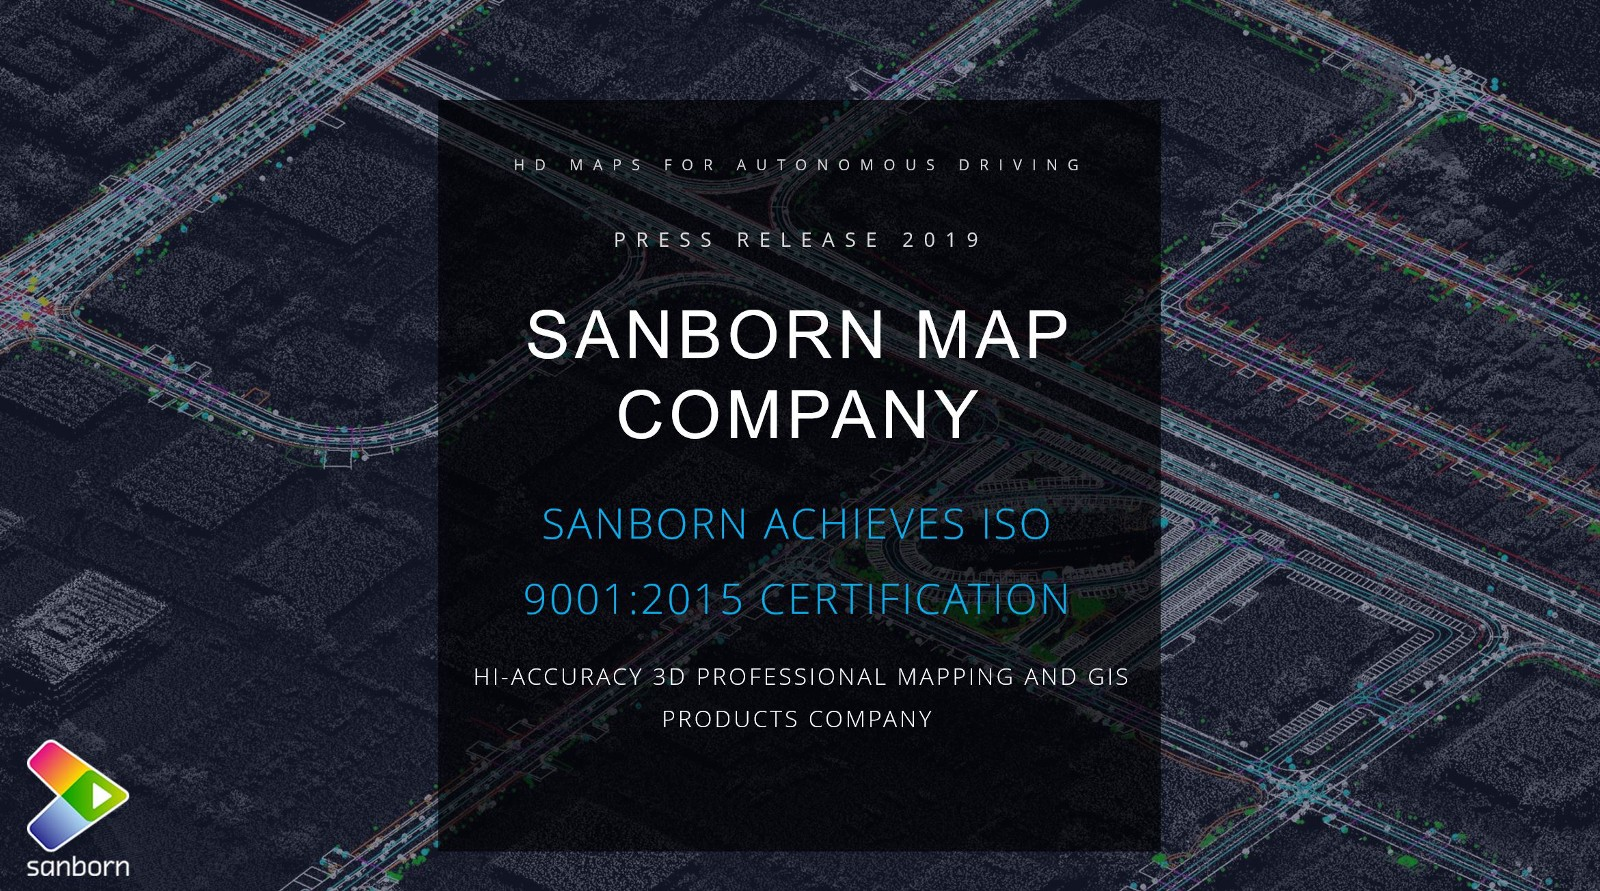 SANBORN ACHIEVES ISO 9001:2015 CERTIFICATION – Sanborn Map Company on